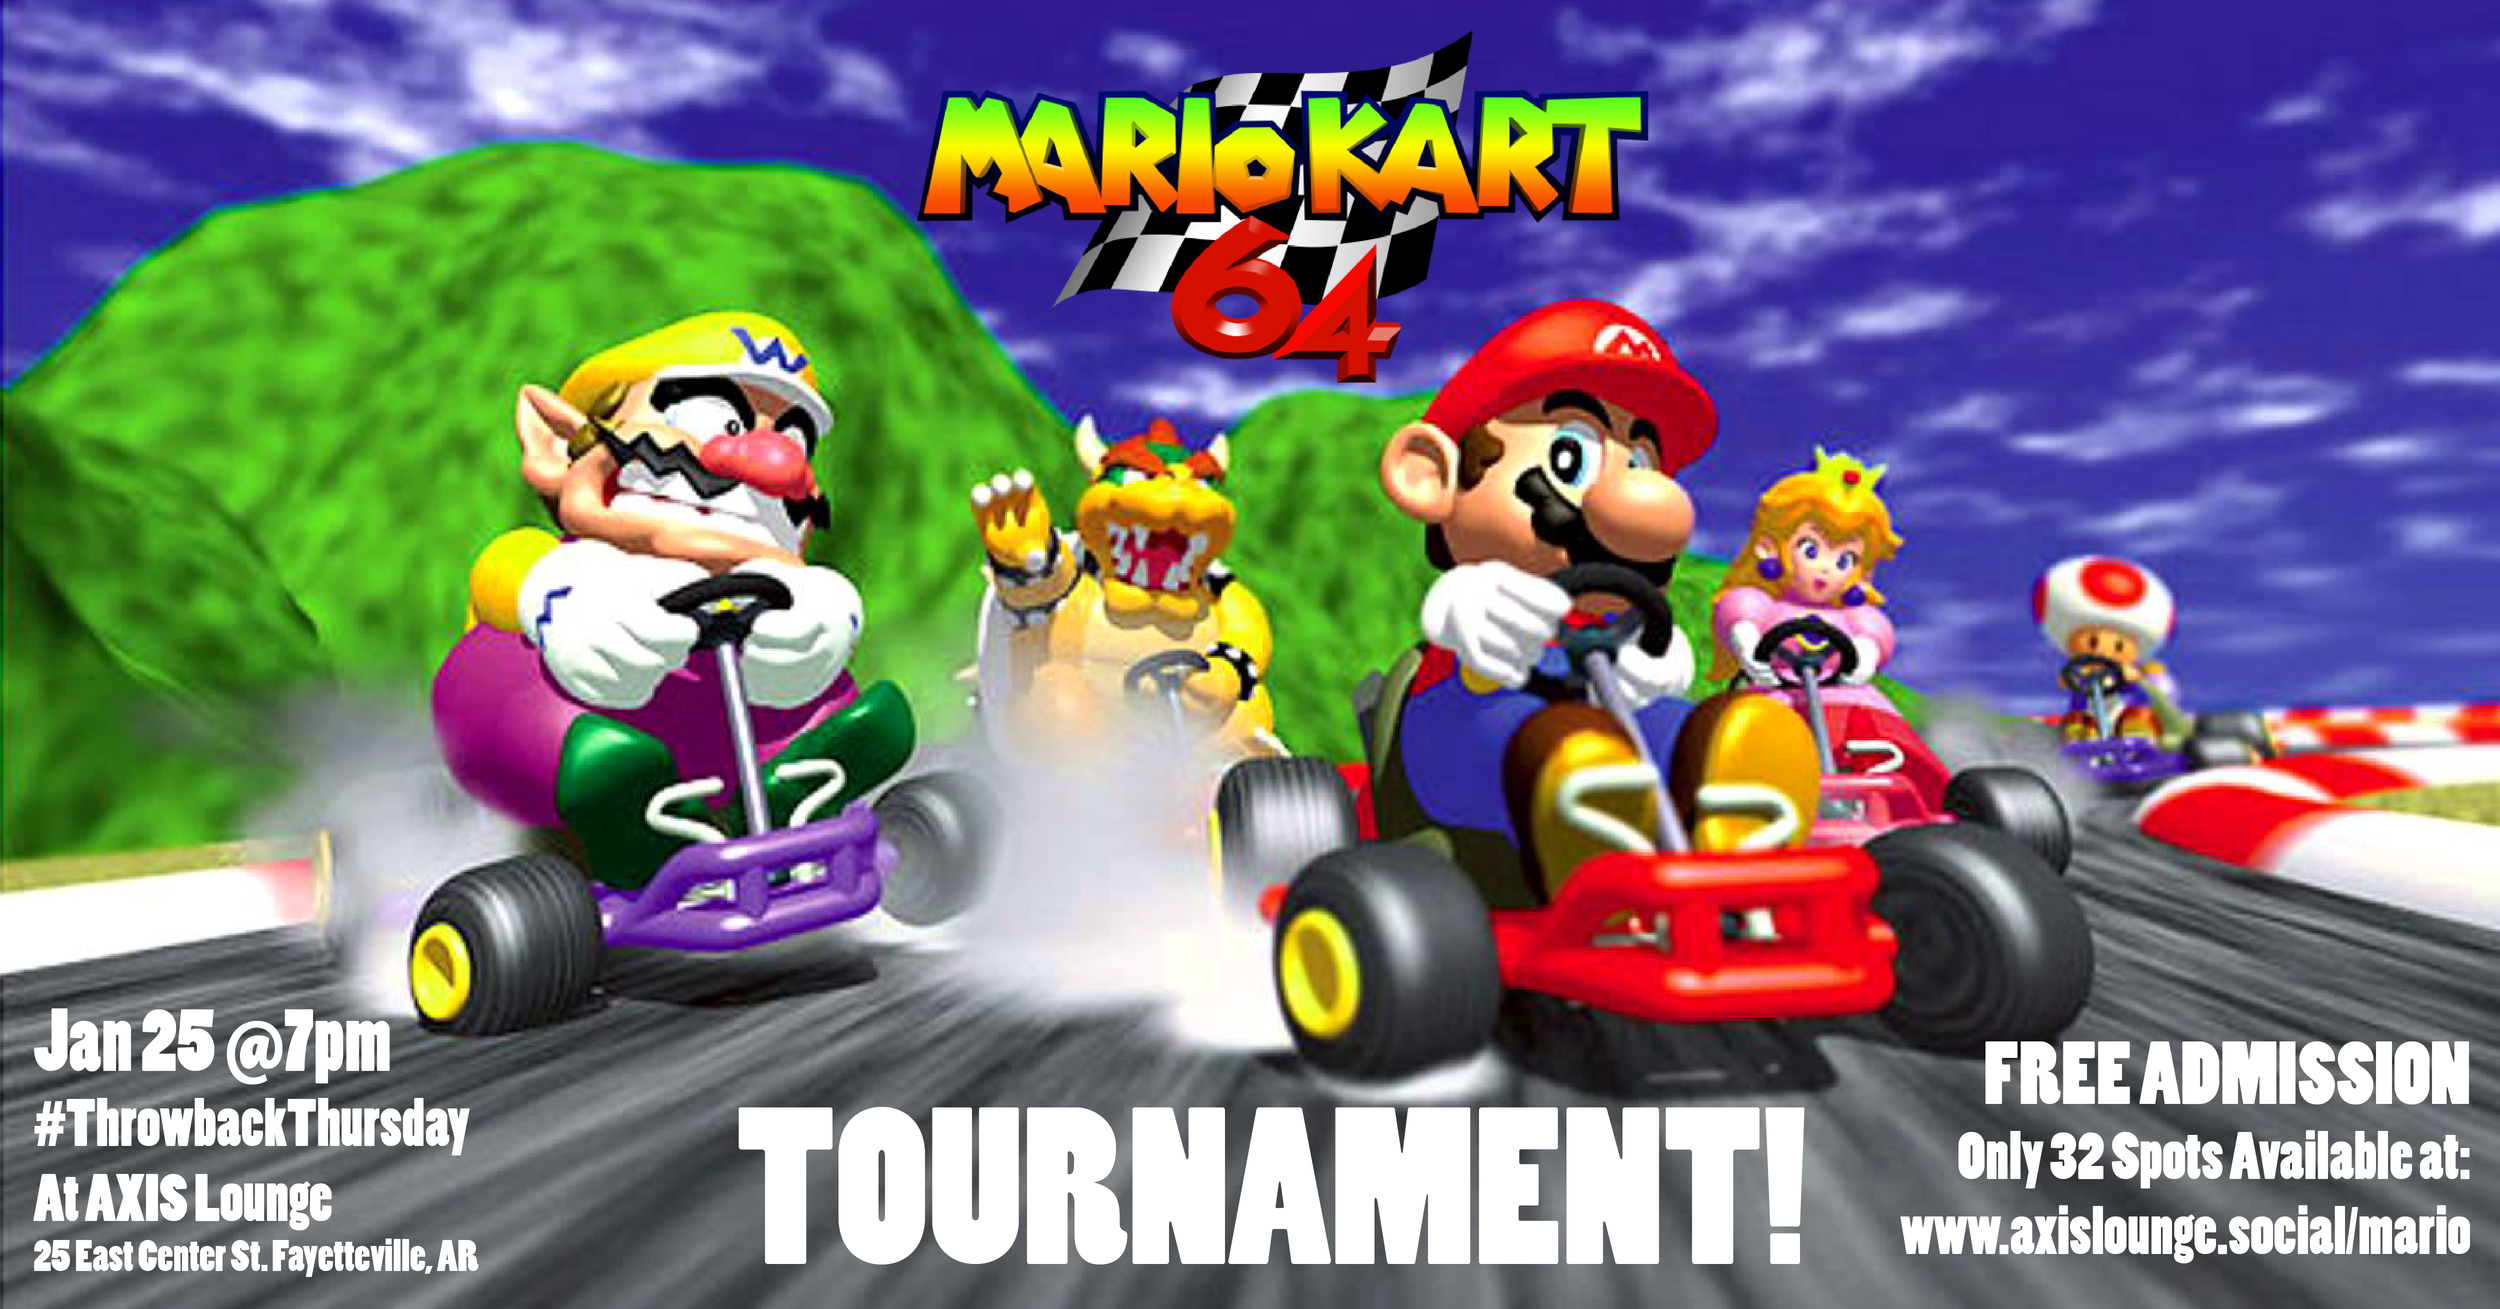 mario kart tournament facebook flyer-01.png